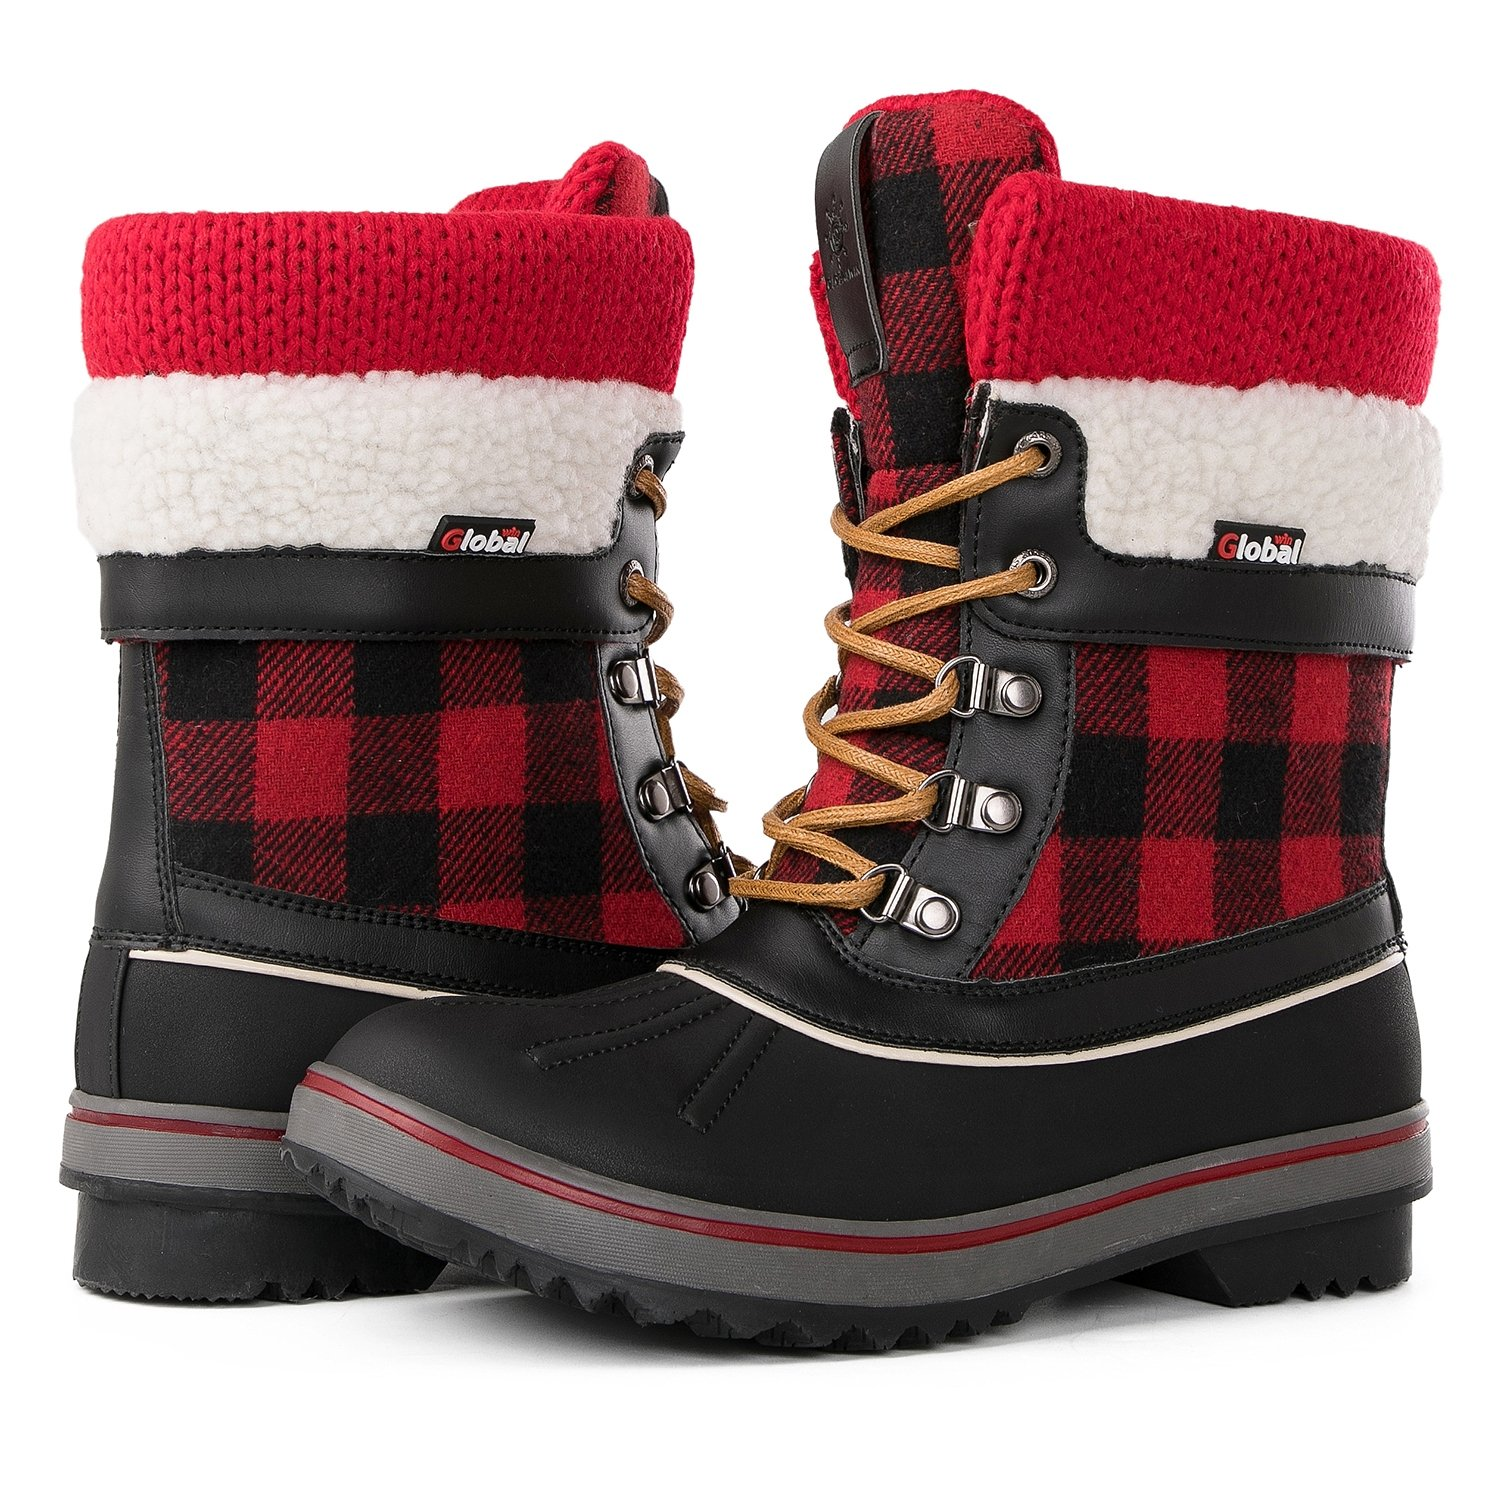 Global Win GLOBALWIN Women's Waterproof Winter Snow Boots B076219VYL 5.5 M US|Black/Red1738